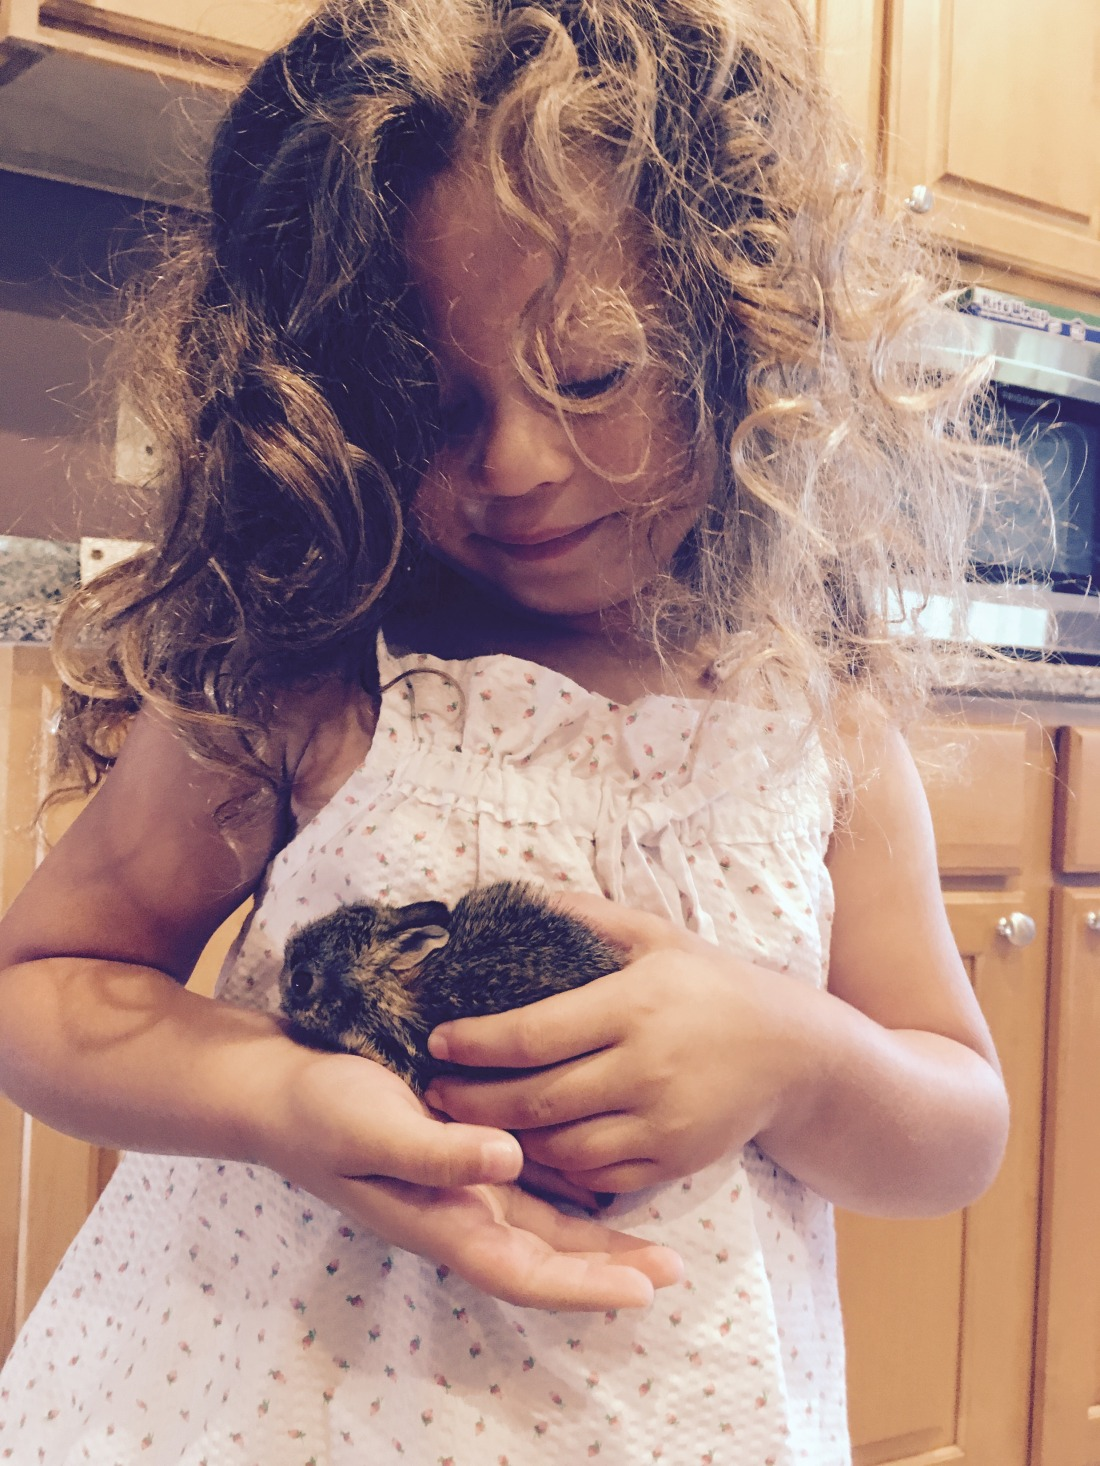 A little girl with golden curls in homemade pajamas holds a baby bunny.